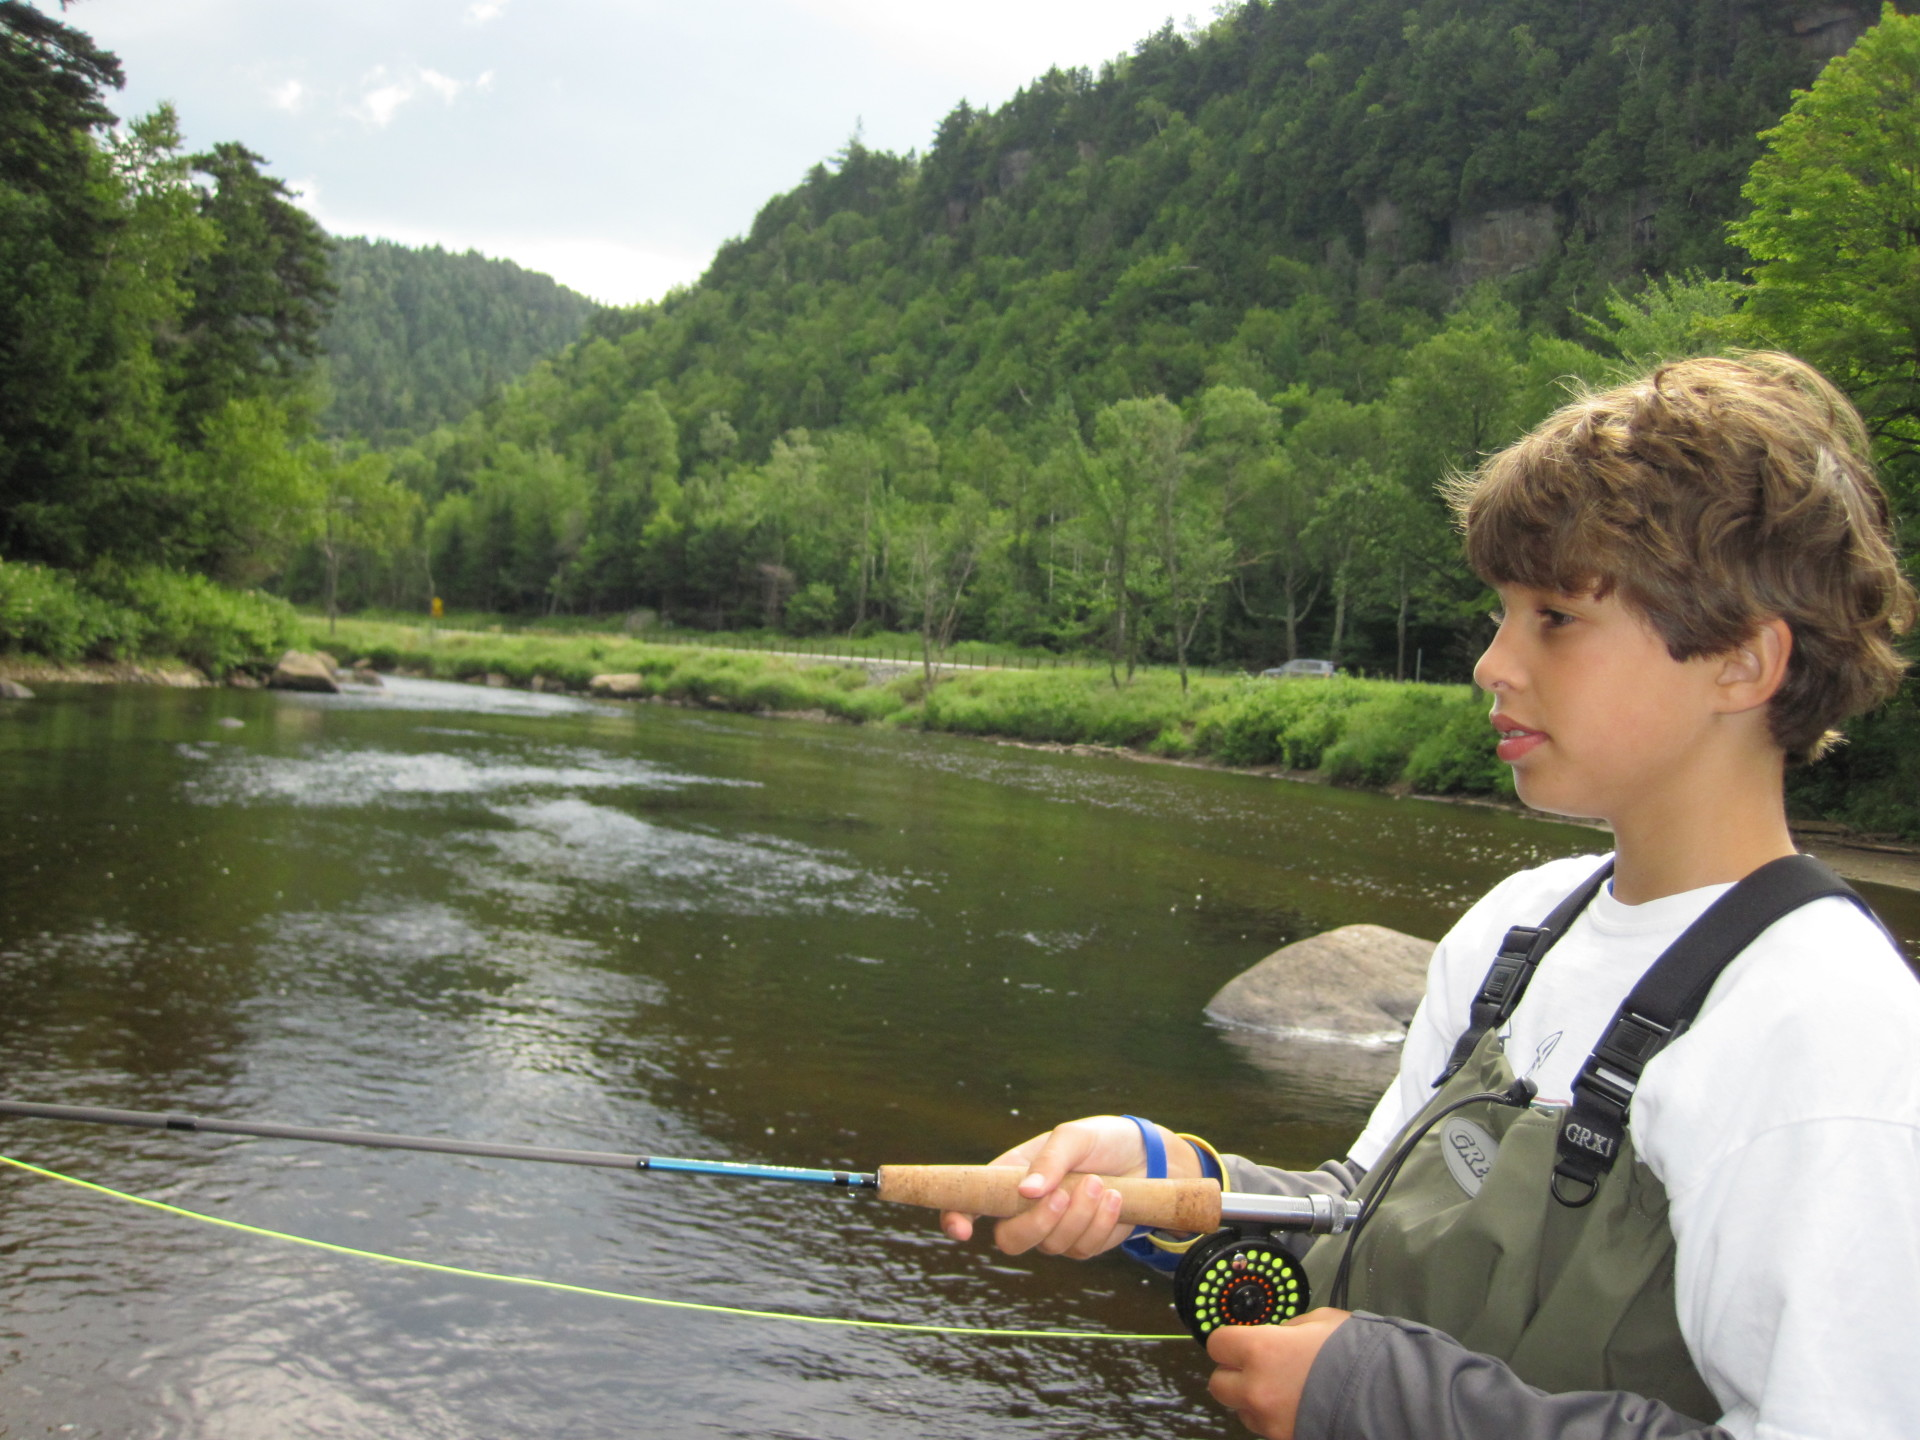 Fishing the West Branch AuSable River